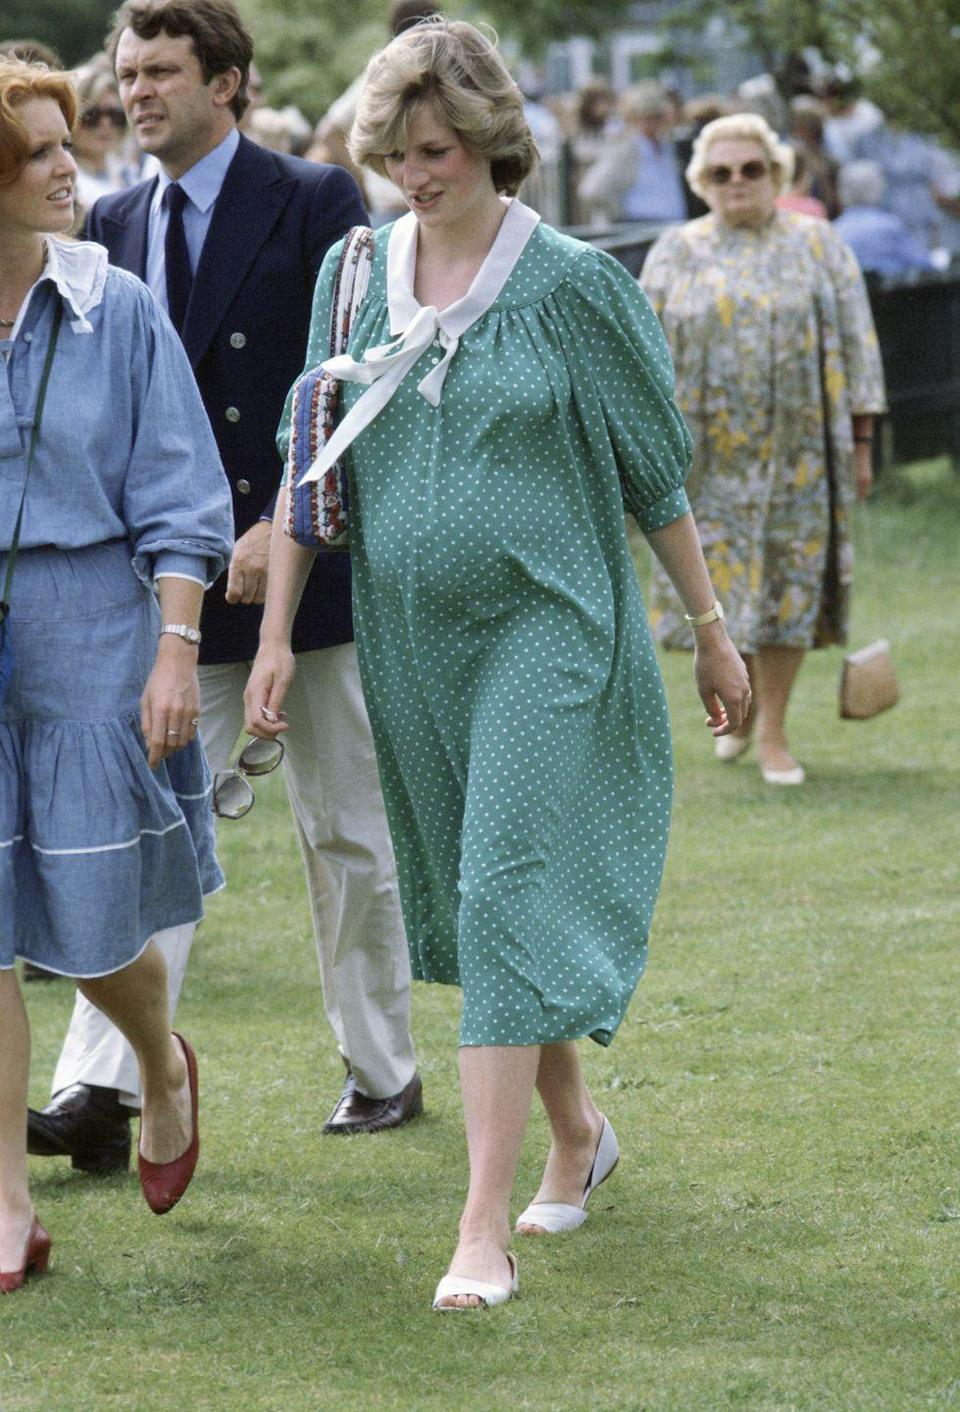 <p>During both of her pregnancies, Diana led the way on maternity style. Case in point: This drop-waist polka dot dress. </p>